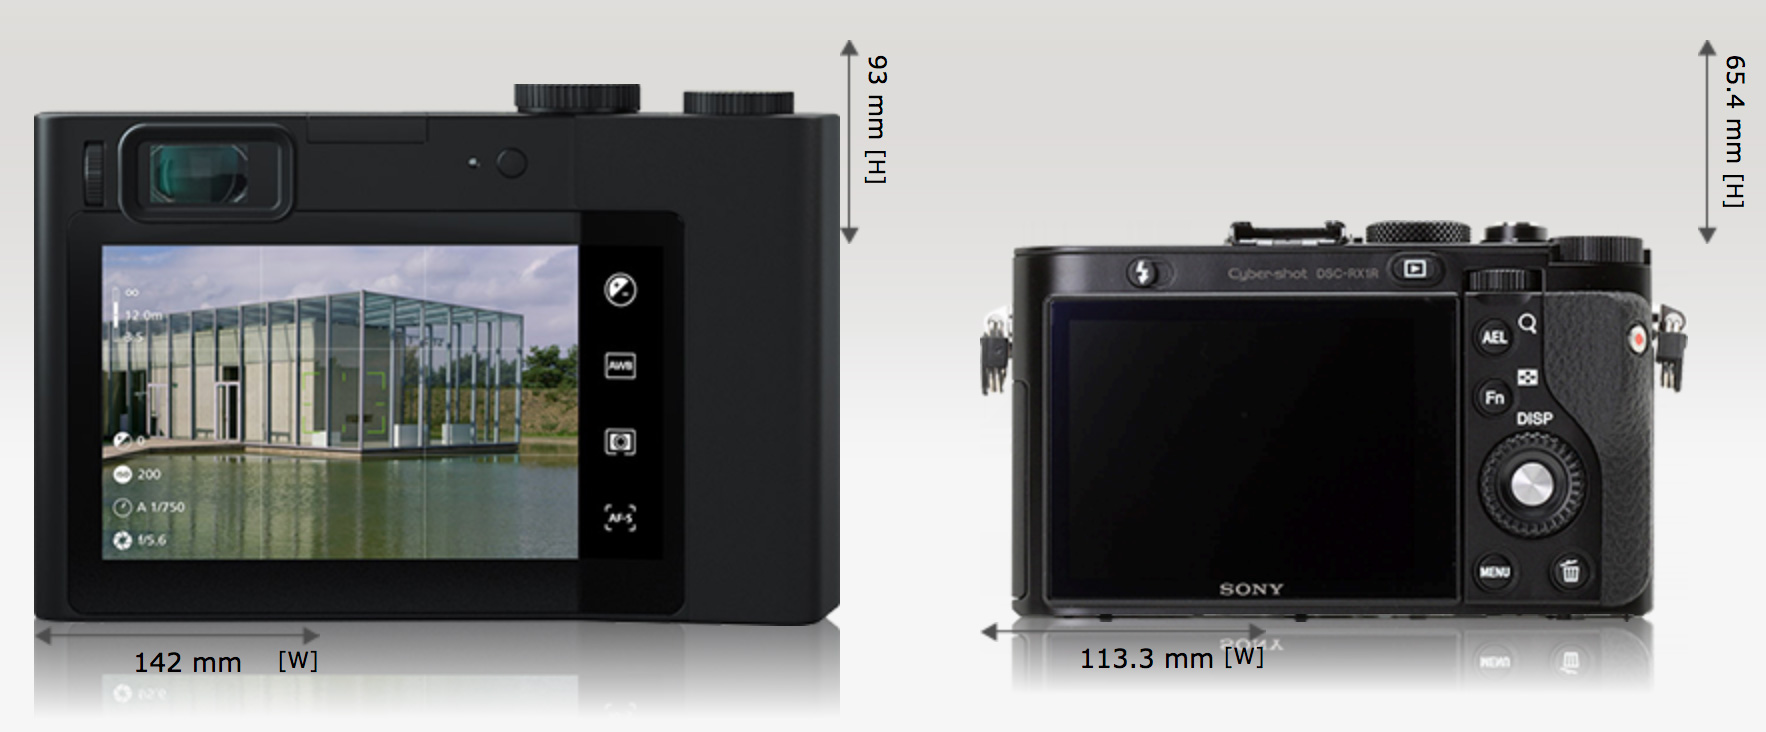 zeiss zx1 camera size comparisons hint its huge